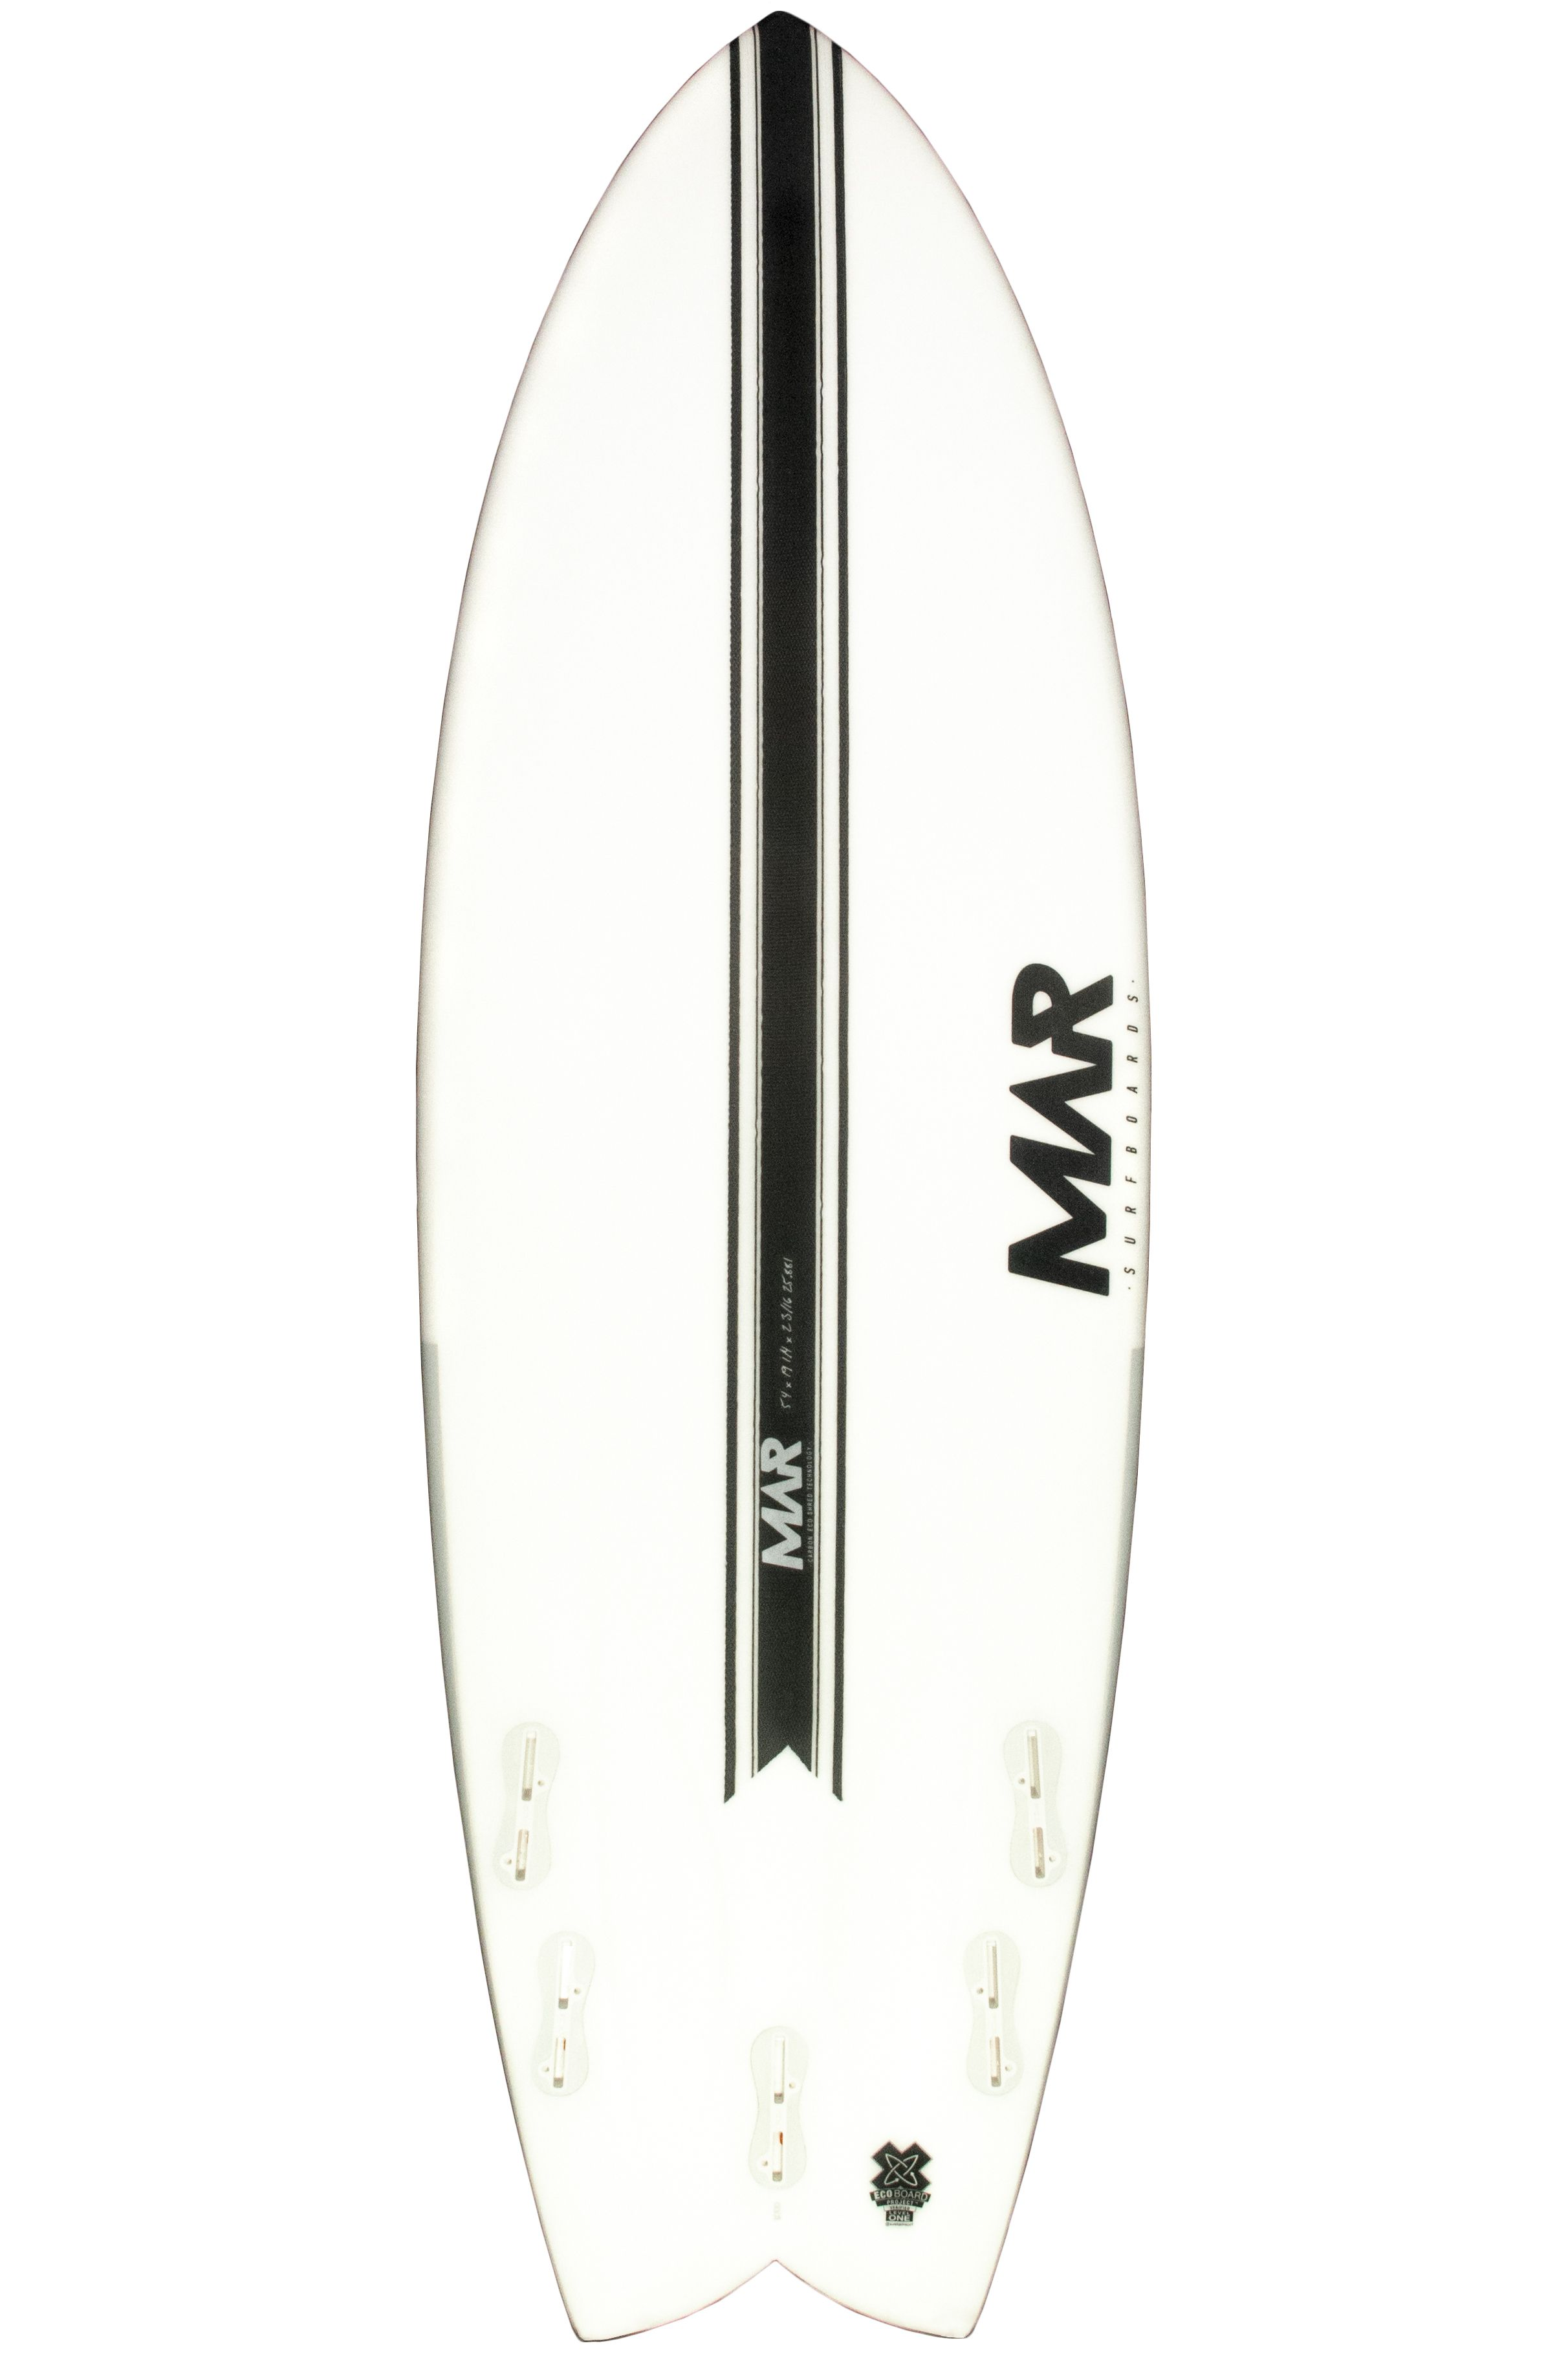 Prancha Surf Mar THE 4 LCT 6'0 Fish Tail - White FCS II Multisystem 6ft0